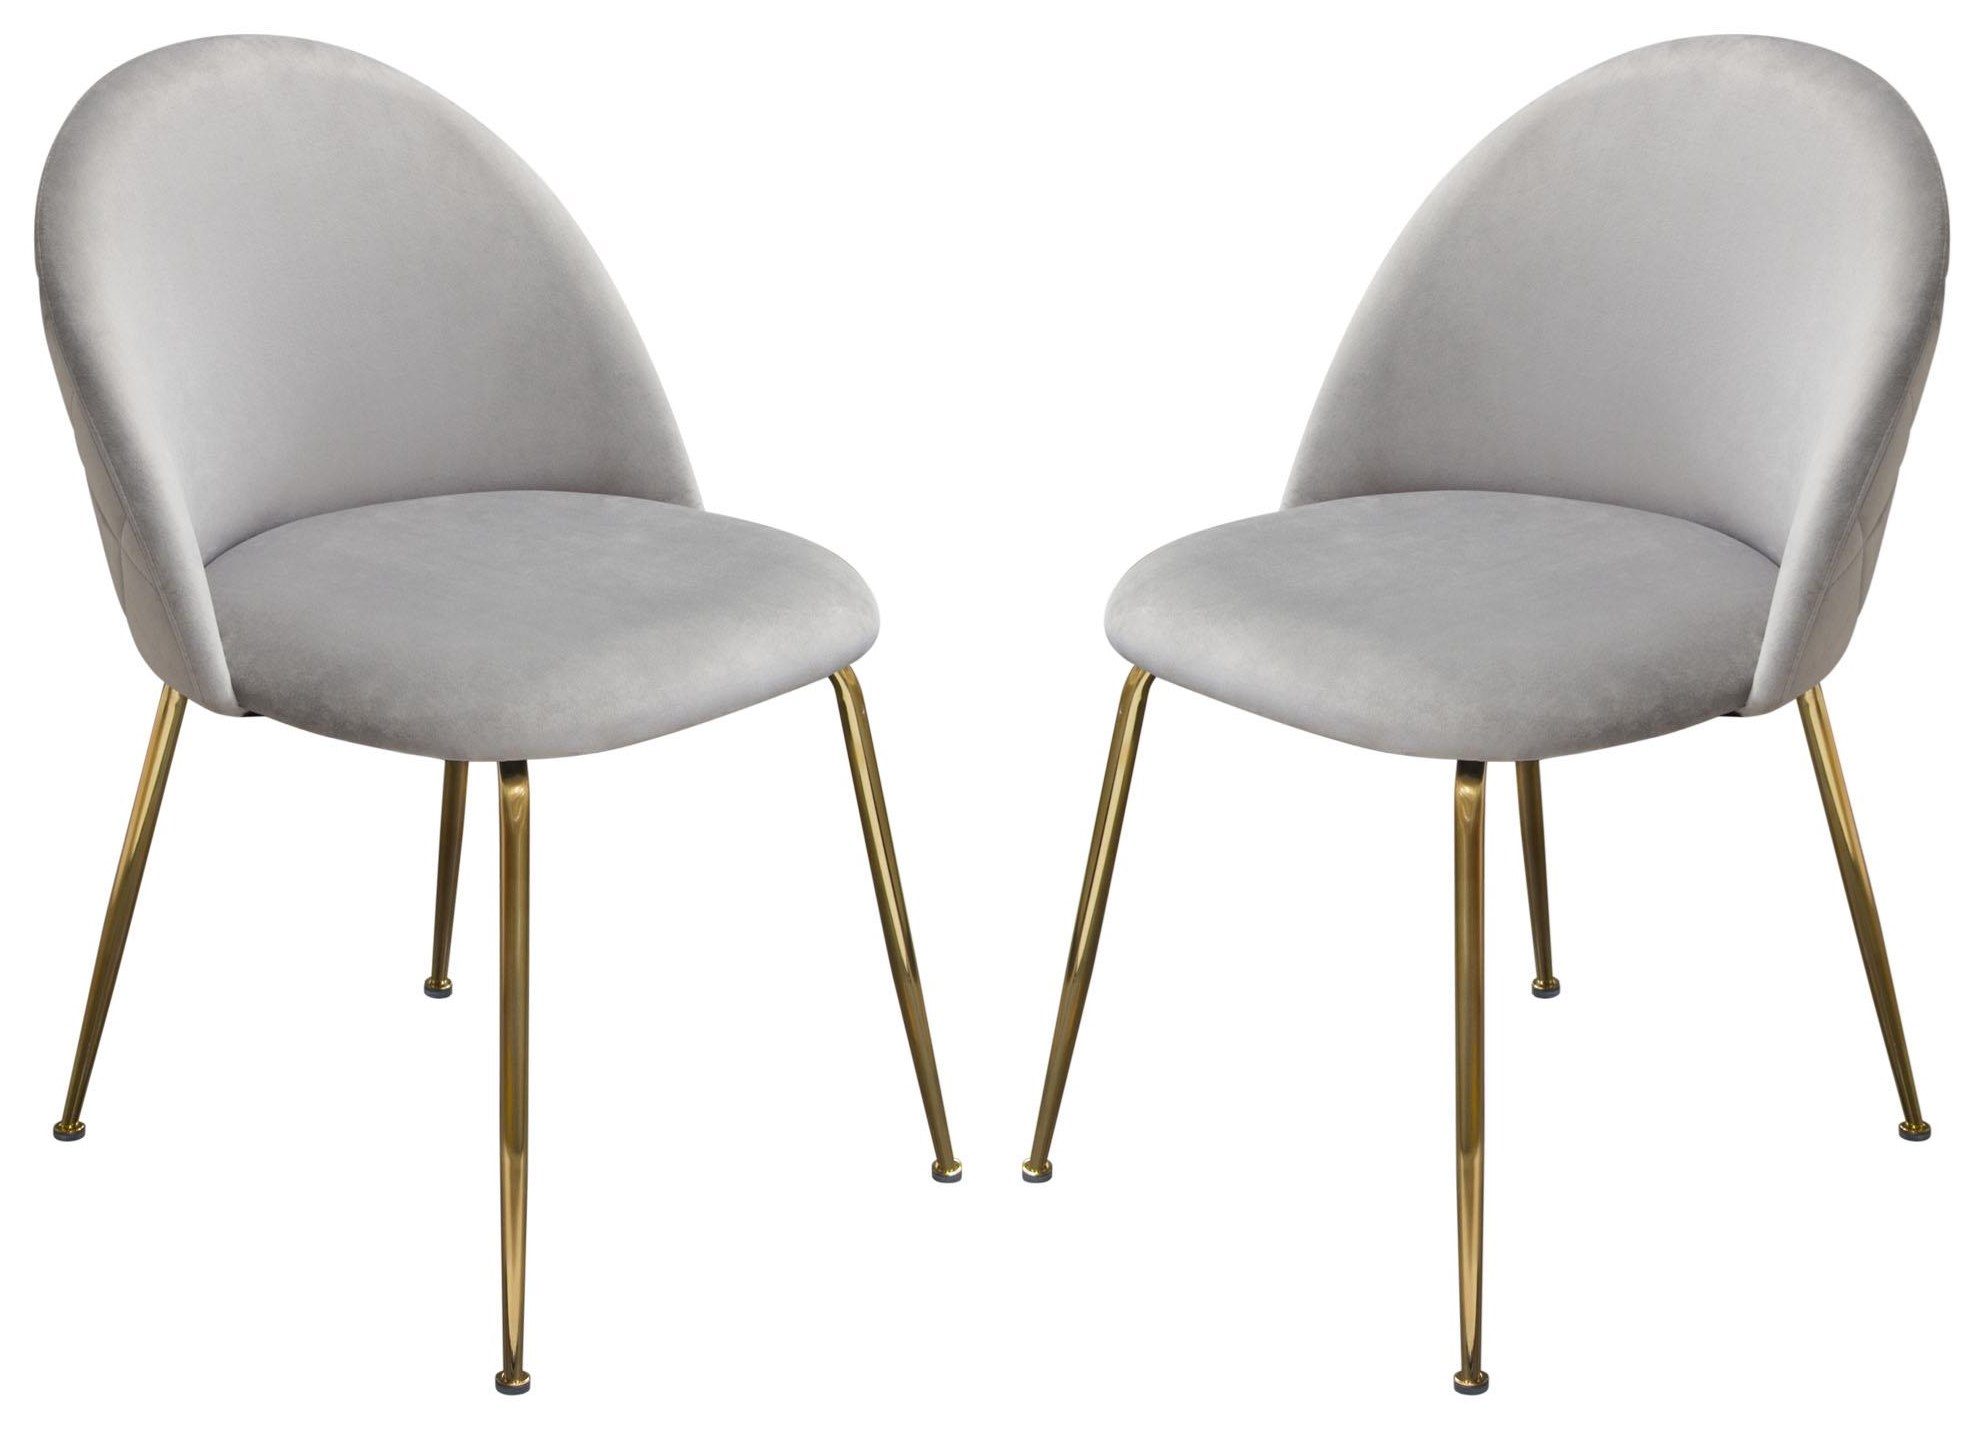 Lilly Dining Chair by Diamond Sofa at HomeWorld Furniture